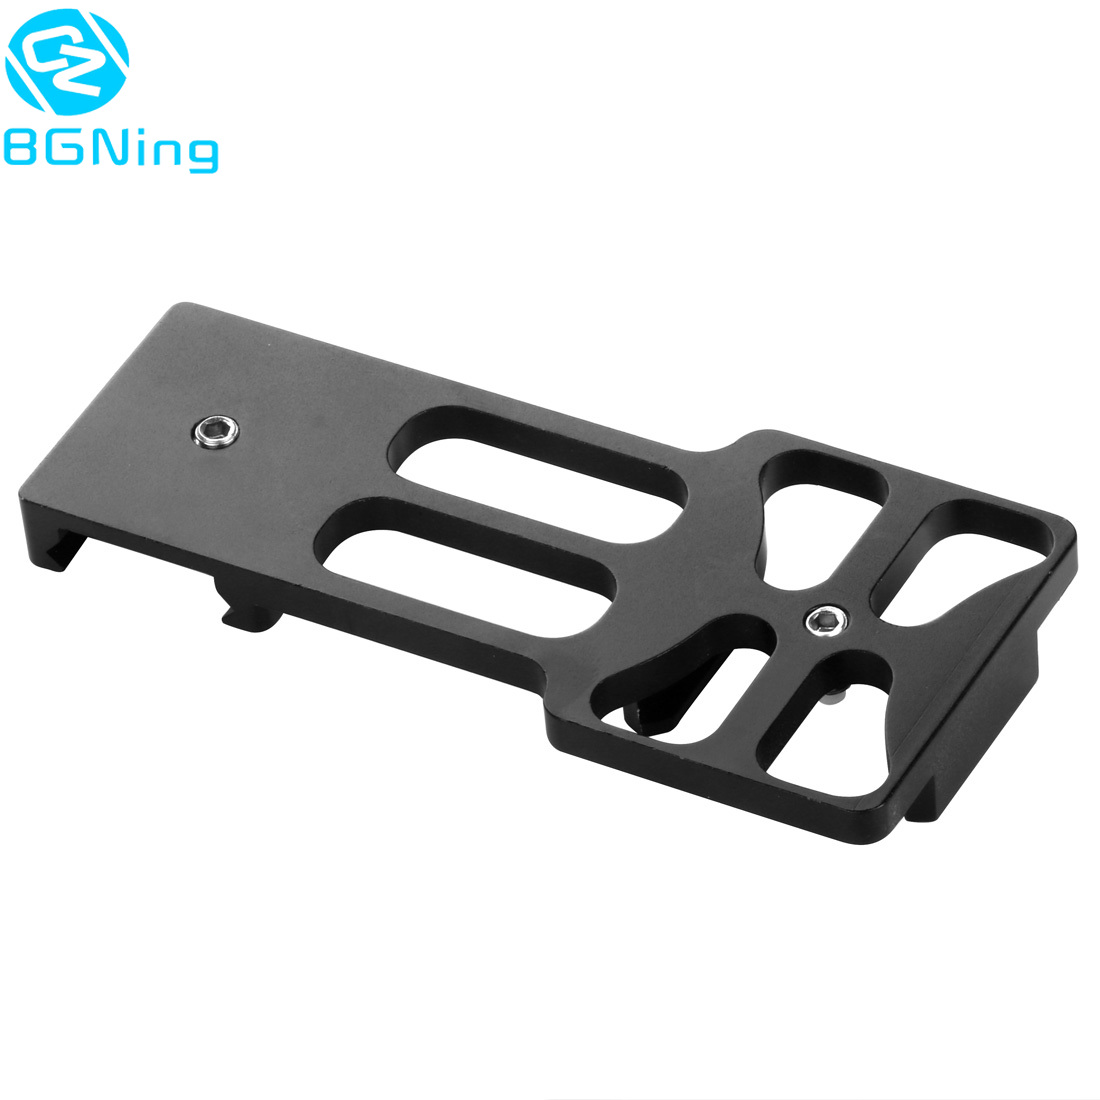 Upgraded CNC Aluminum 20mm Gun Side Rail Mount For Gopro Xiaoyi Gitup Sport Action Camera For Hunters Airsoft Player Accessories